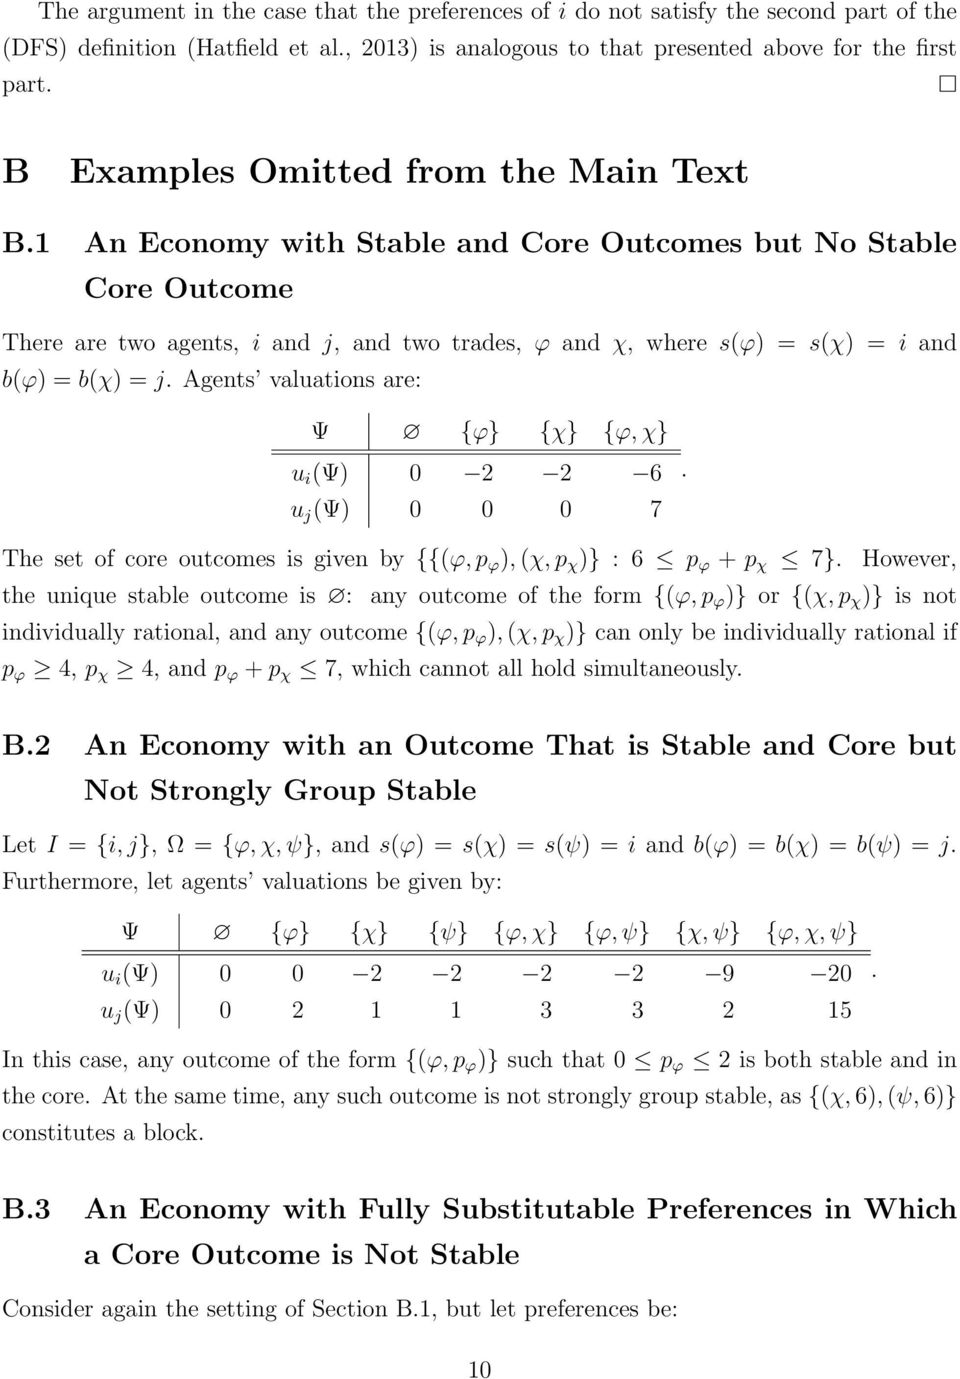 1 An Economy with Stable and Core Outcomes but No Stable Core Outcome There are two agents, i and j, and two trades, ϕ and χ, where s(ϕ) = s(χ) = i and b(ϕ) = b(χ) = j.